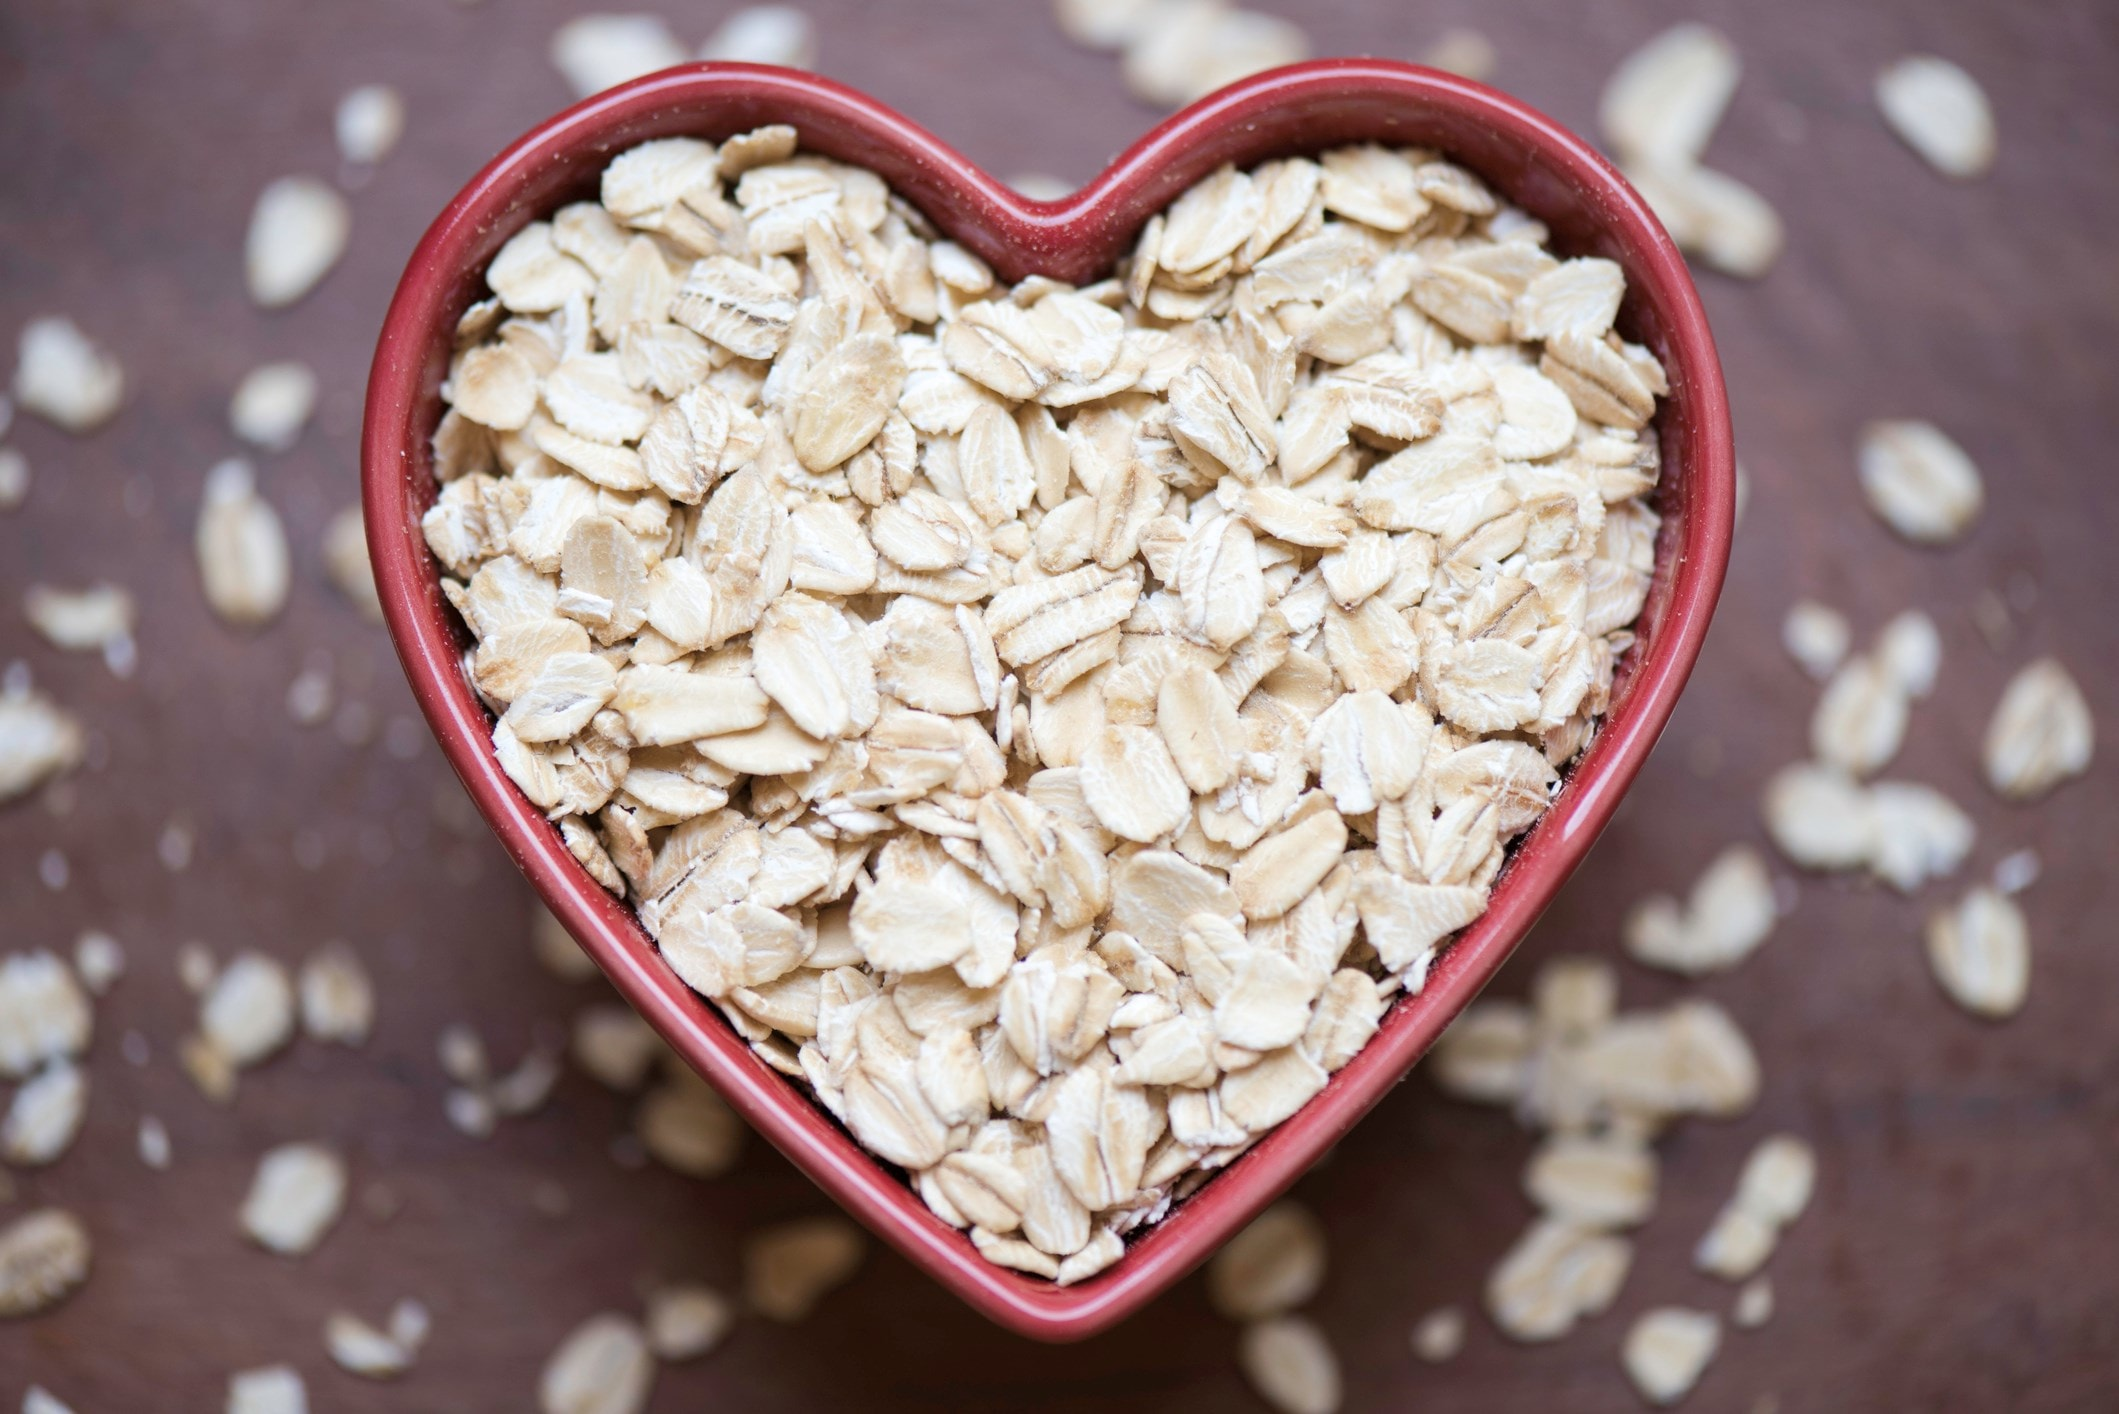 Oatmeal in a heart shaped bowl